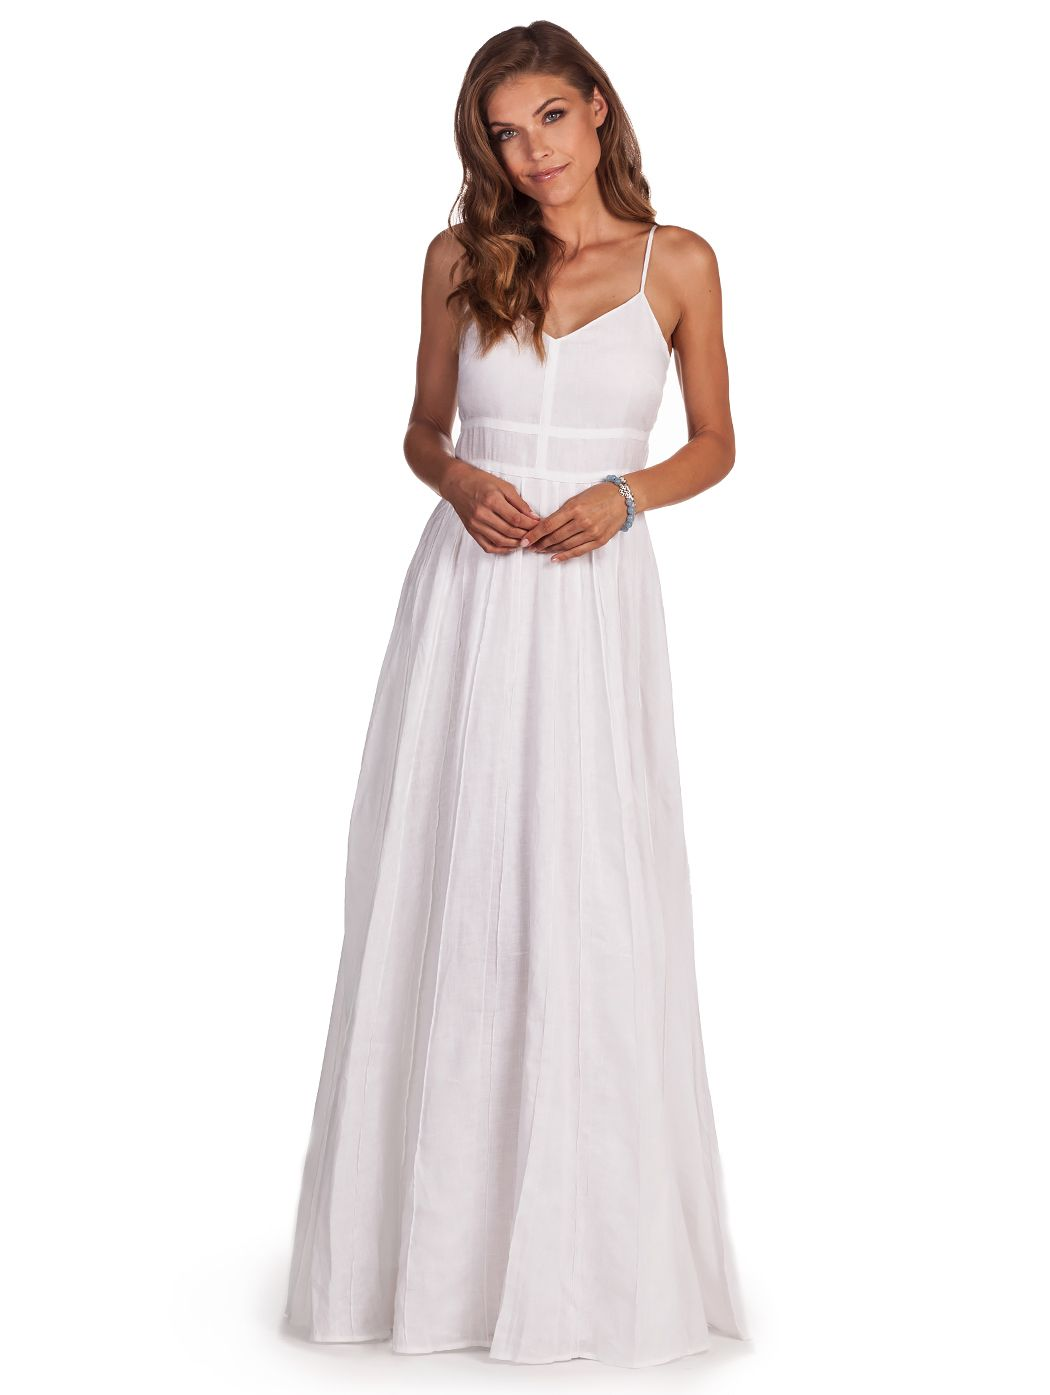 Image Result For White Linen Dress: Linen Summer Dresses For Weddings At Websimilar.org